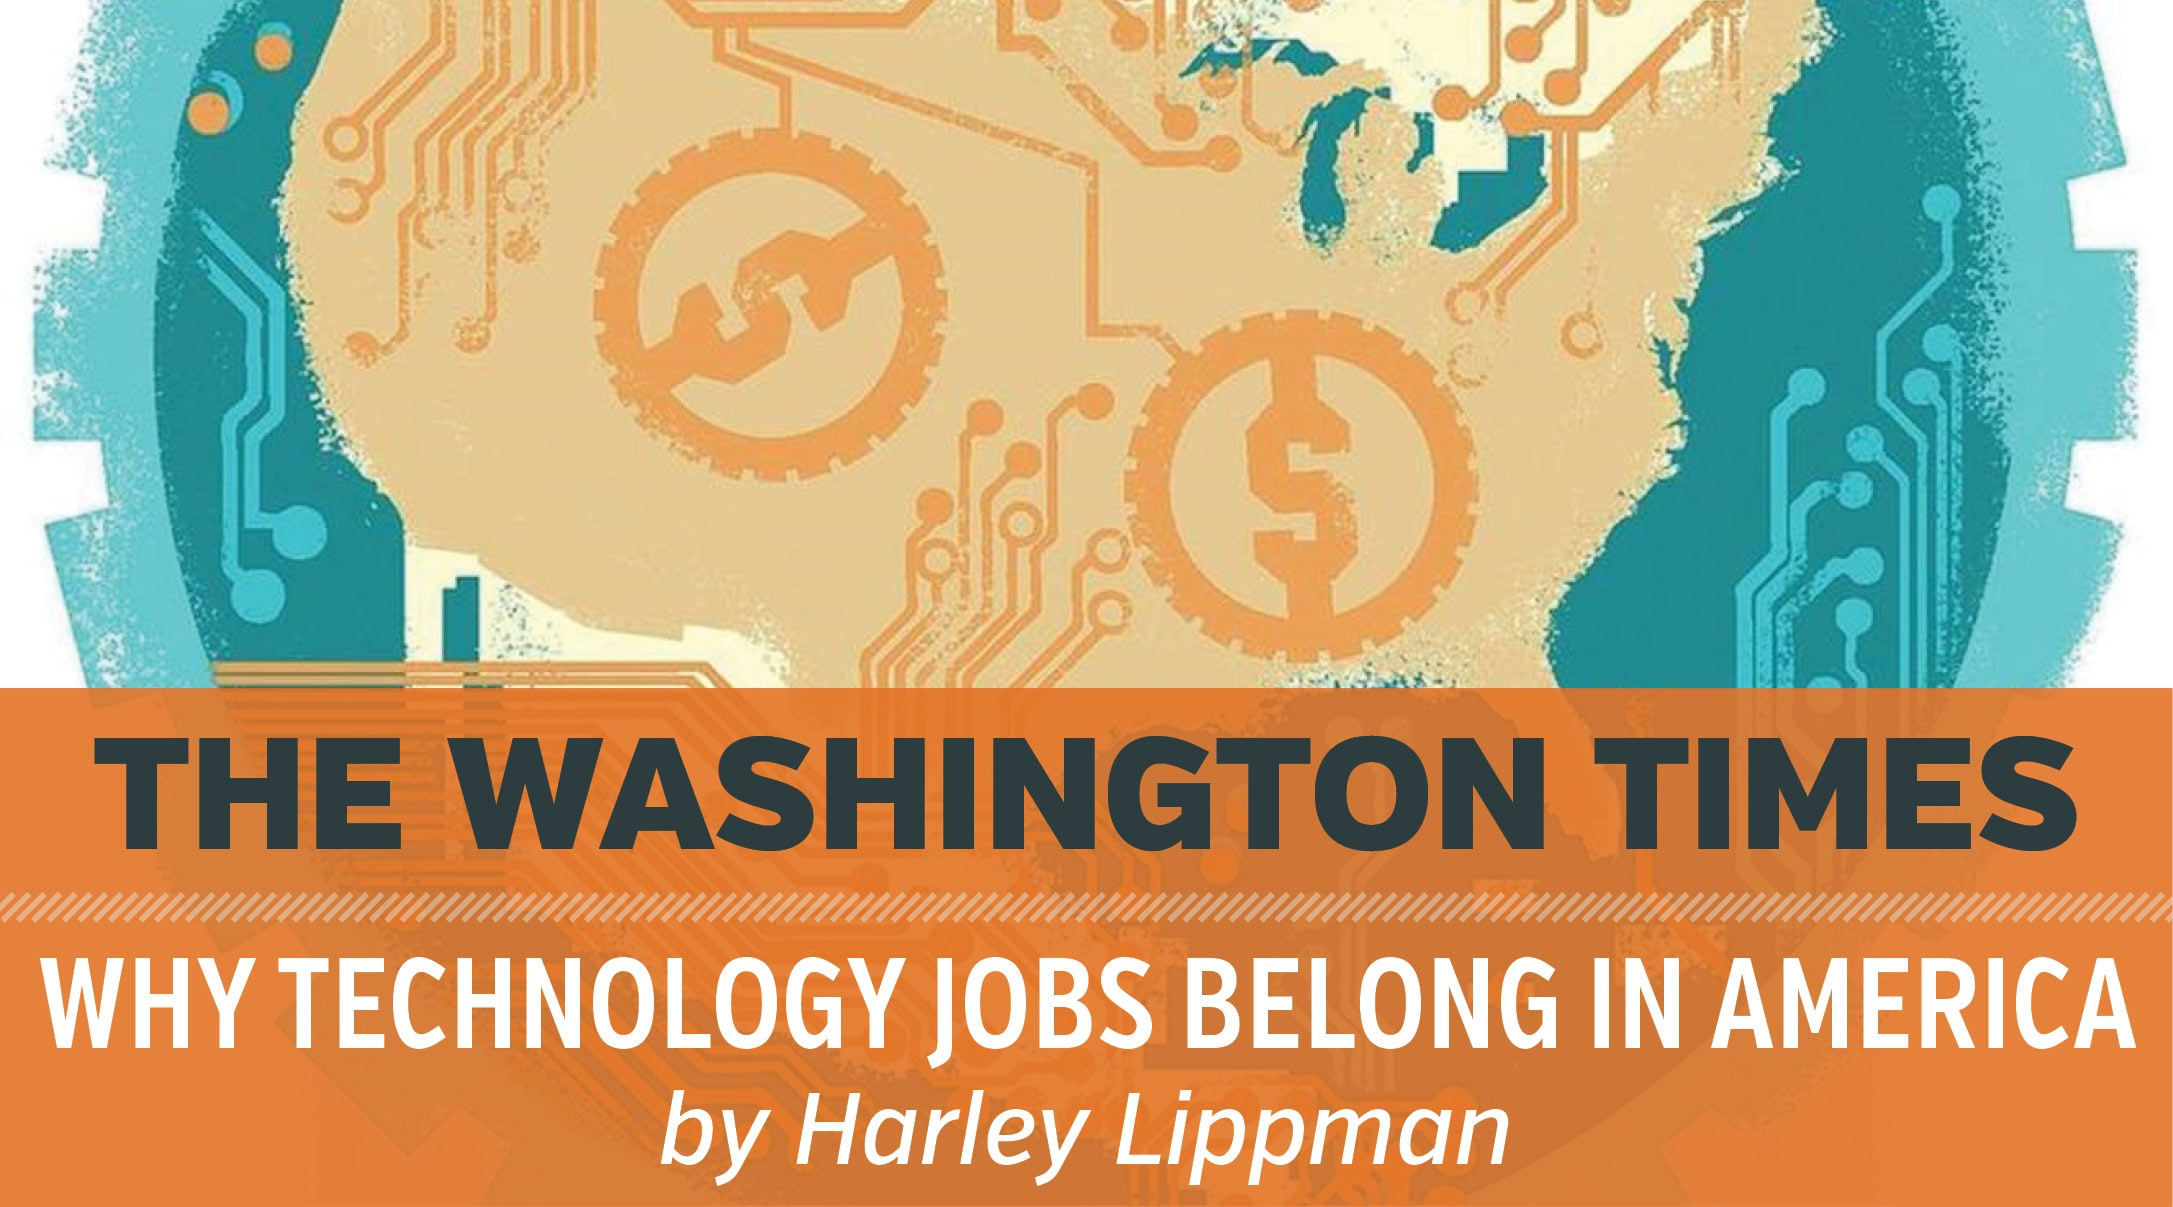 Why Technology Jobs Belong in America - News Page-1.jpg